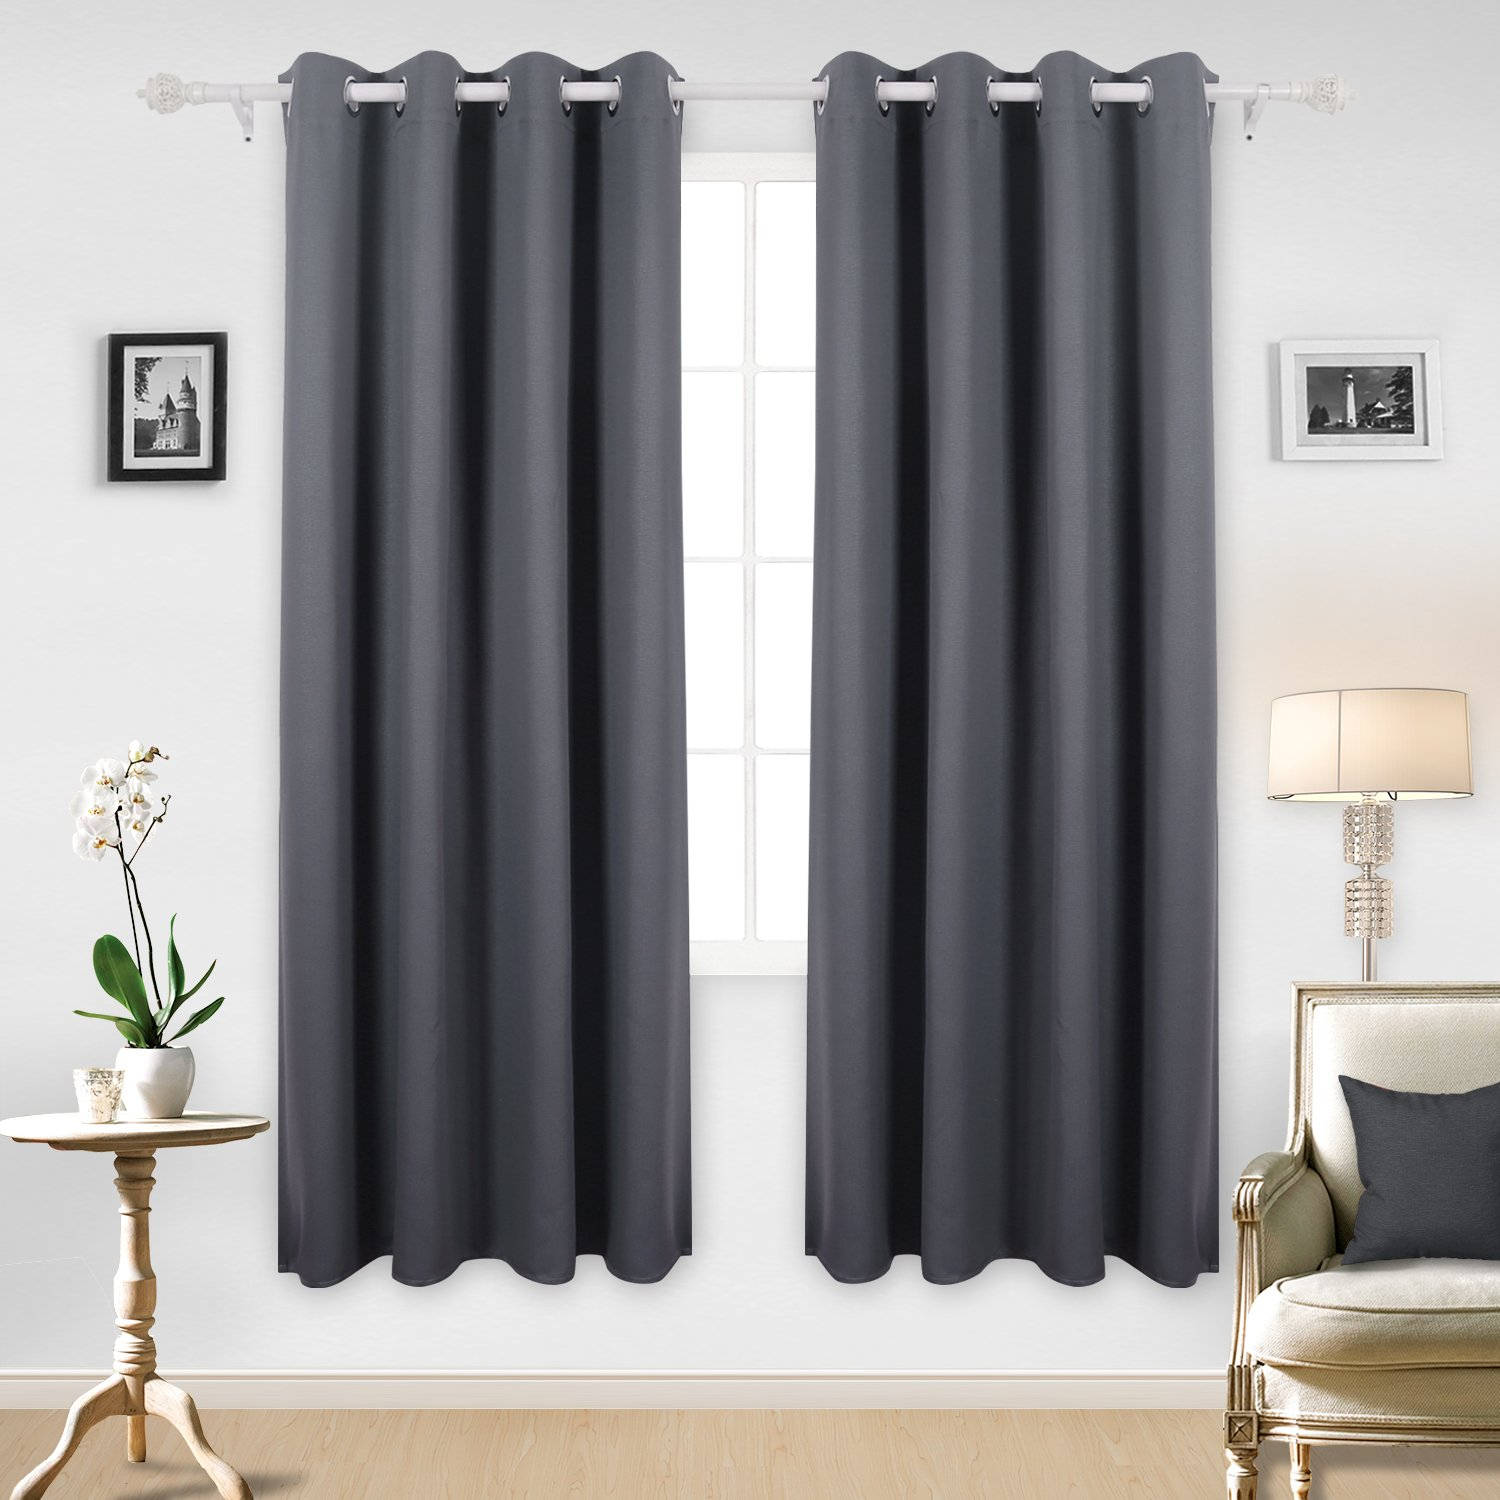 Buy Deconovo Solid Thermal Insulated Blackout Curtains Throughout Thermal Insulated Blackout Curtain Pairs (View 23 of 30)